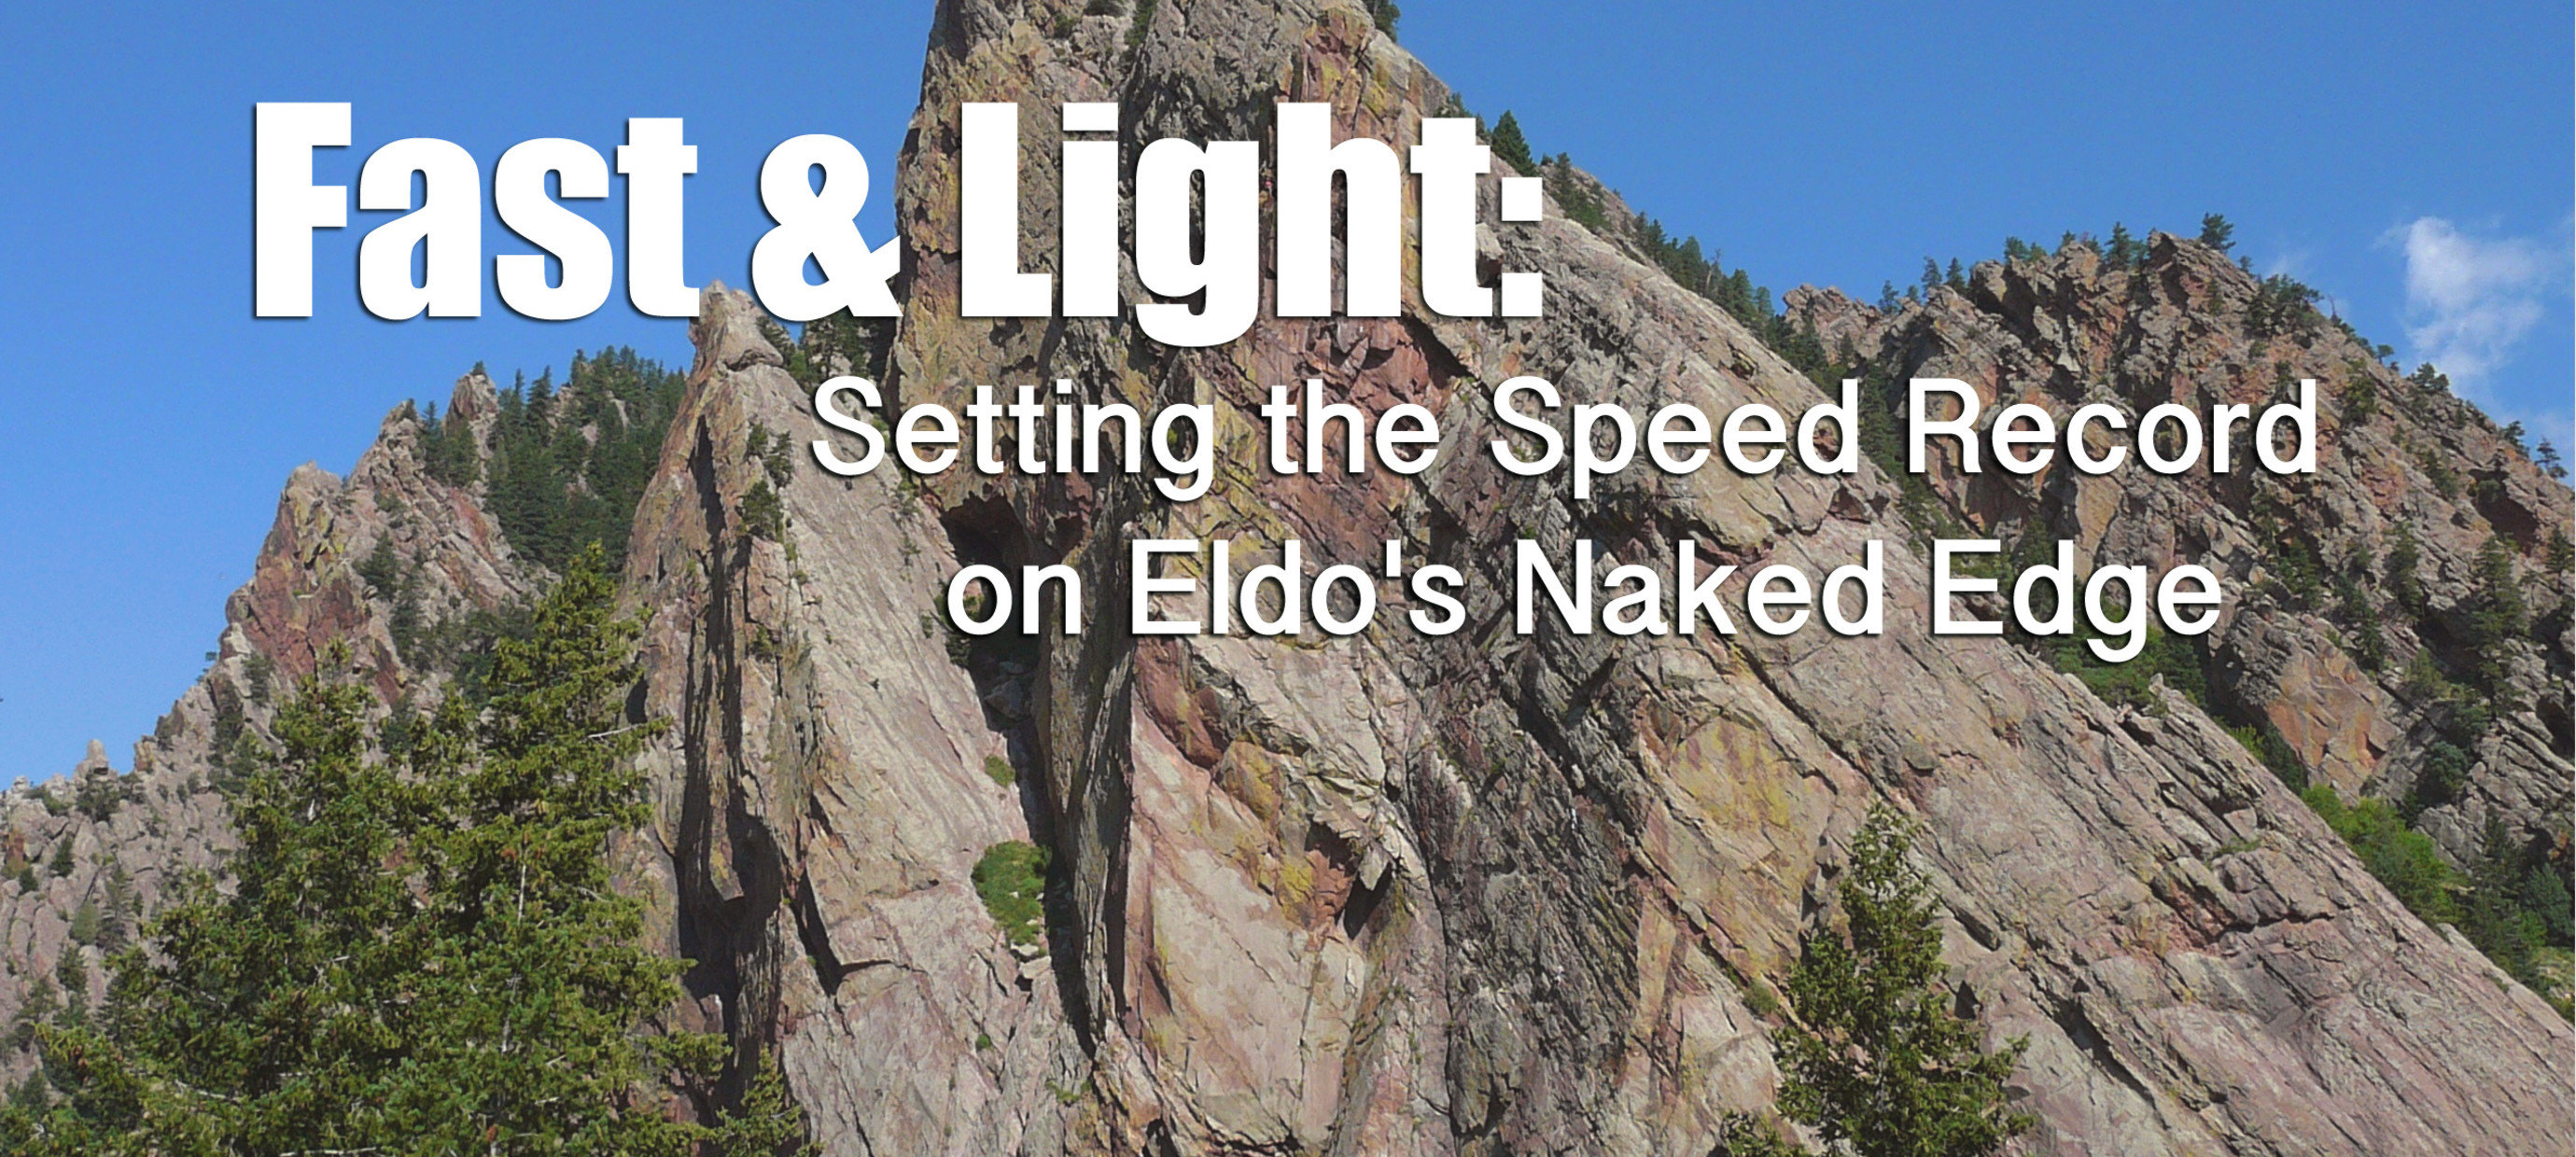 Fast and Light: Setting the Speed Record on Eldo's Naked Edge